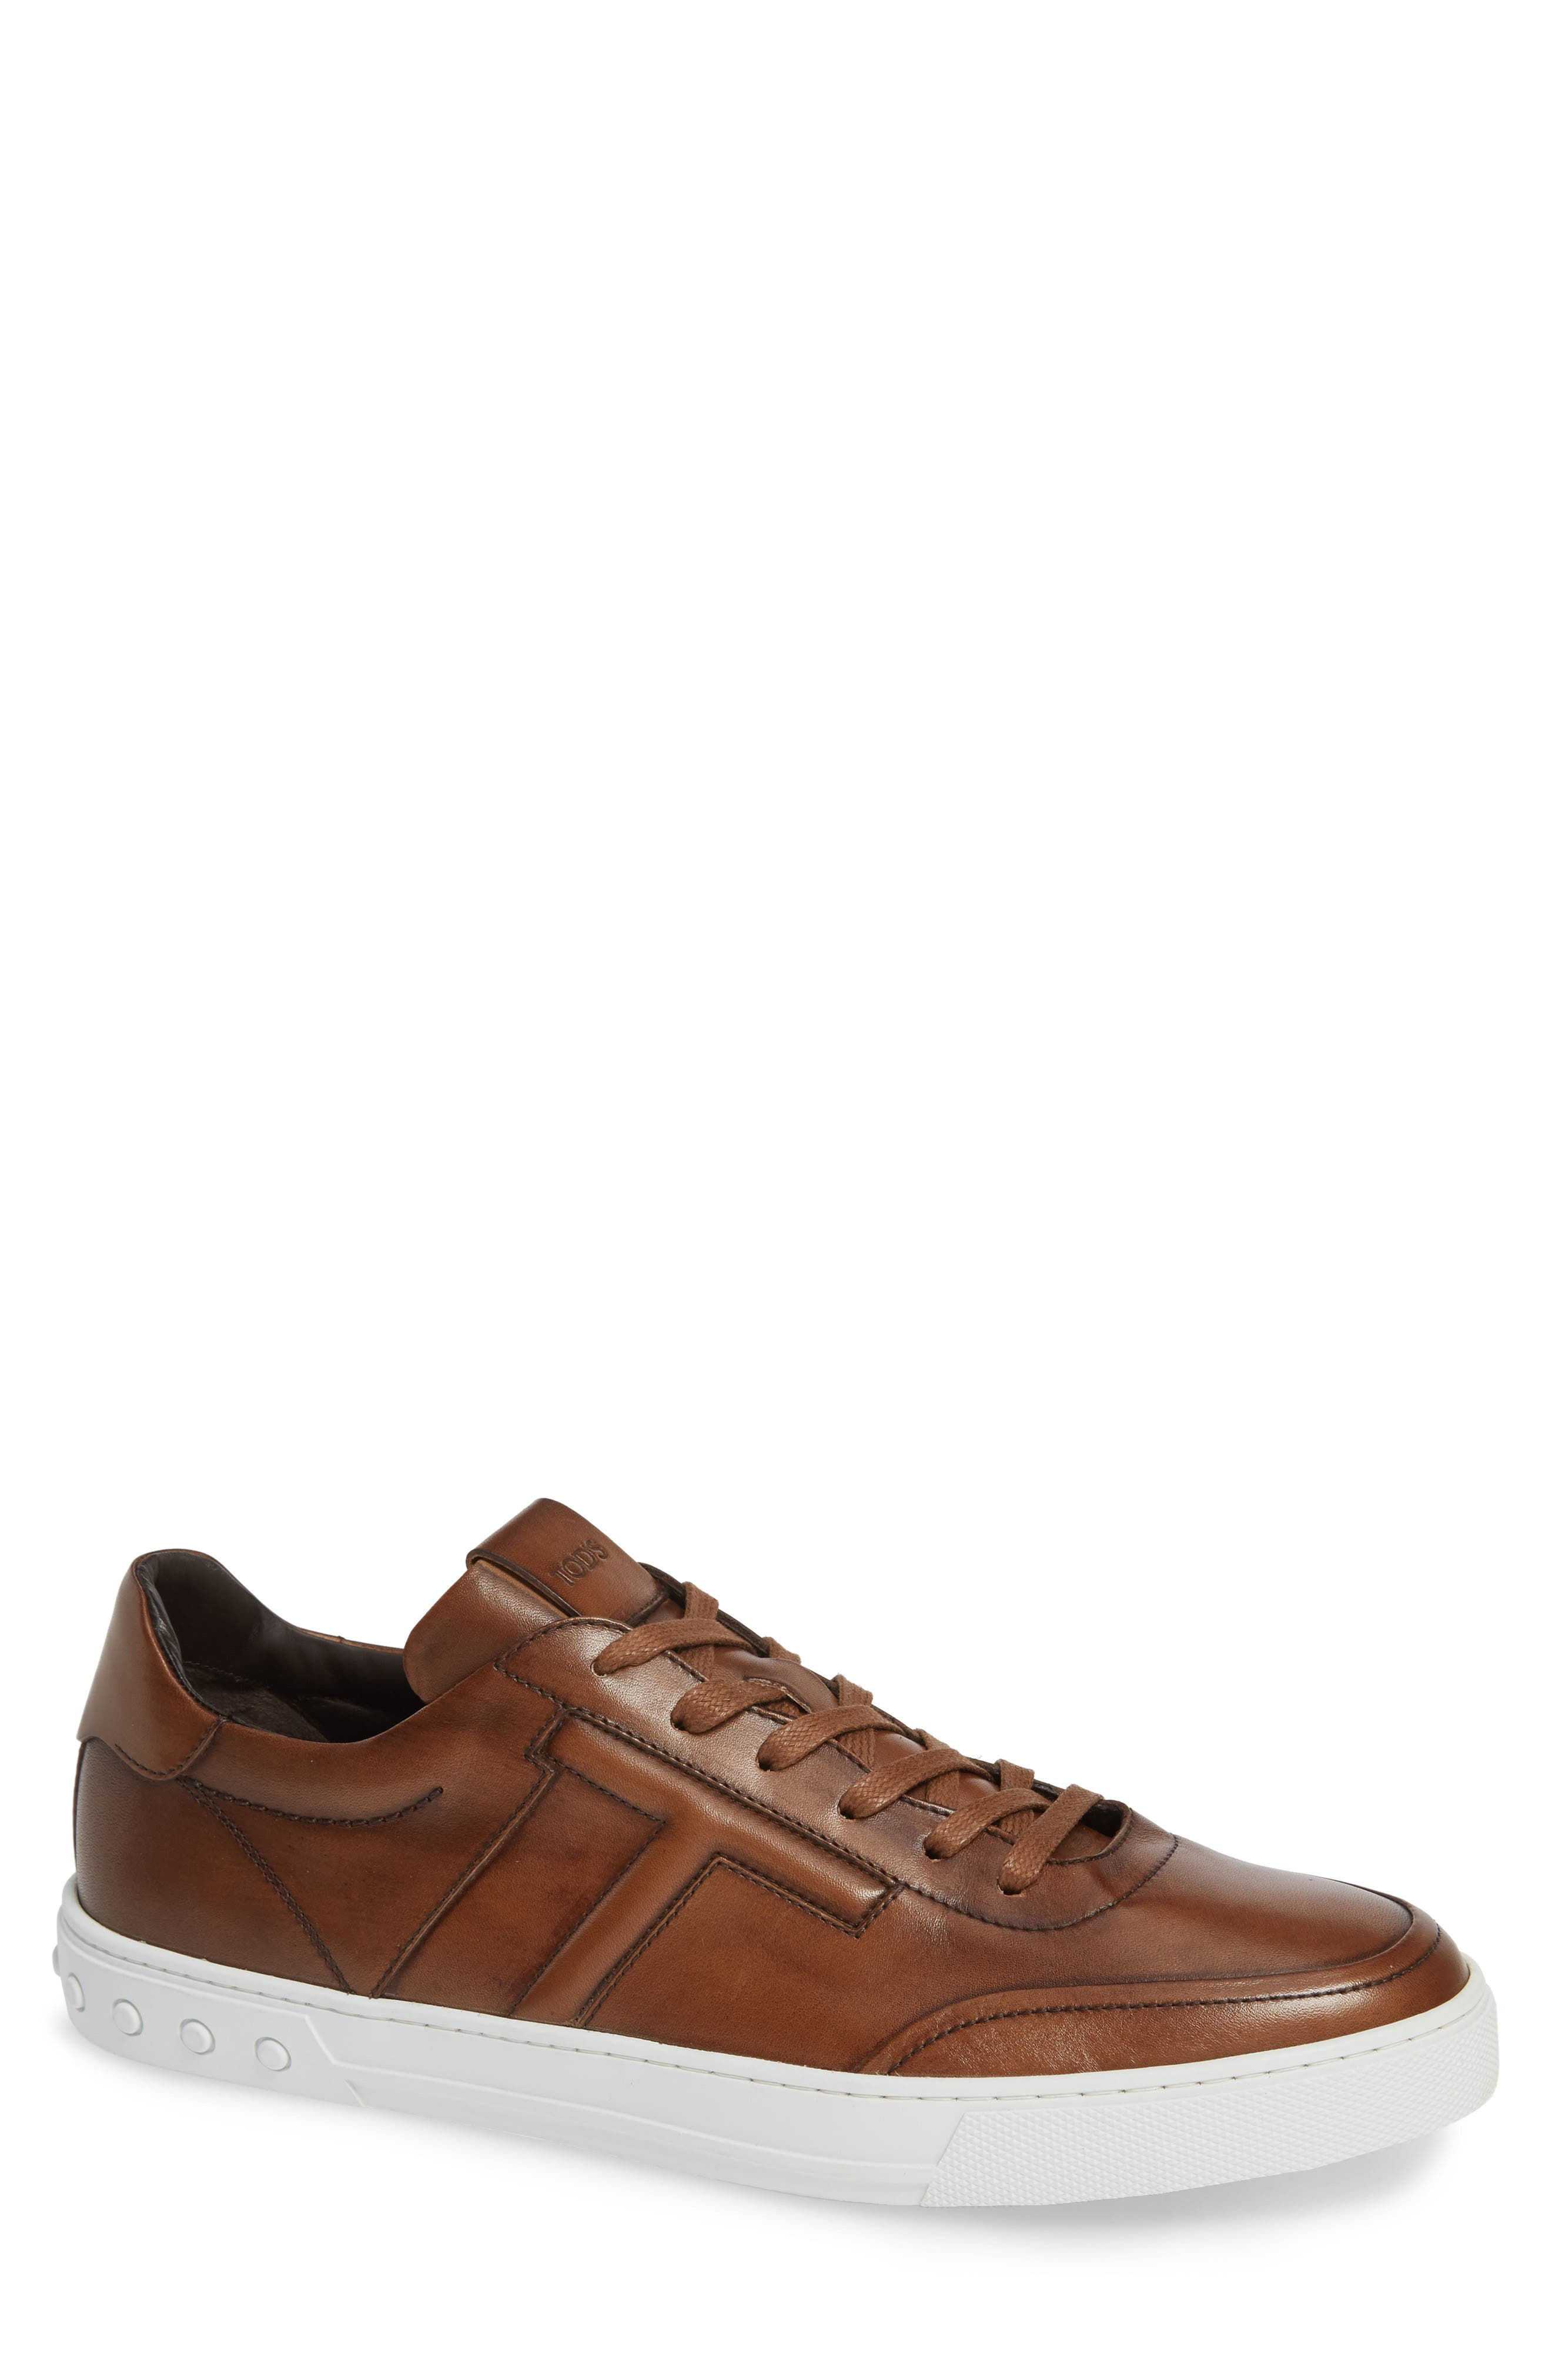 TOD'S, 'Cassetta' Sneaker, Main thumbnail 1, color, CARAMEL/ SPECIAL LEATHER